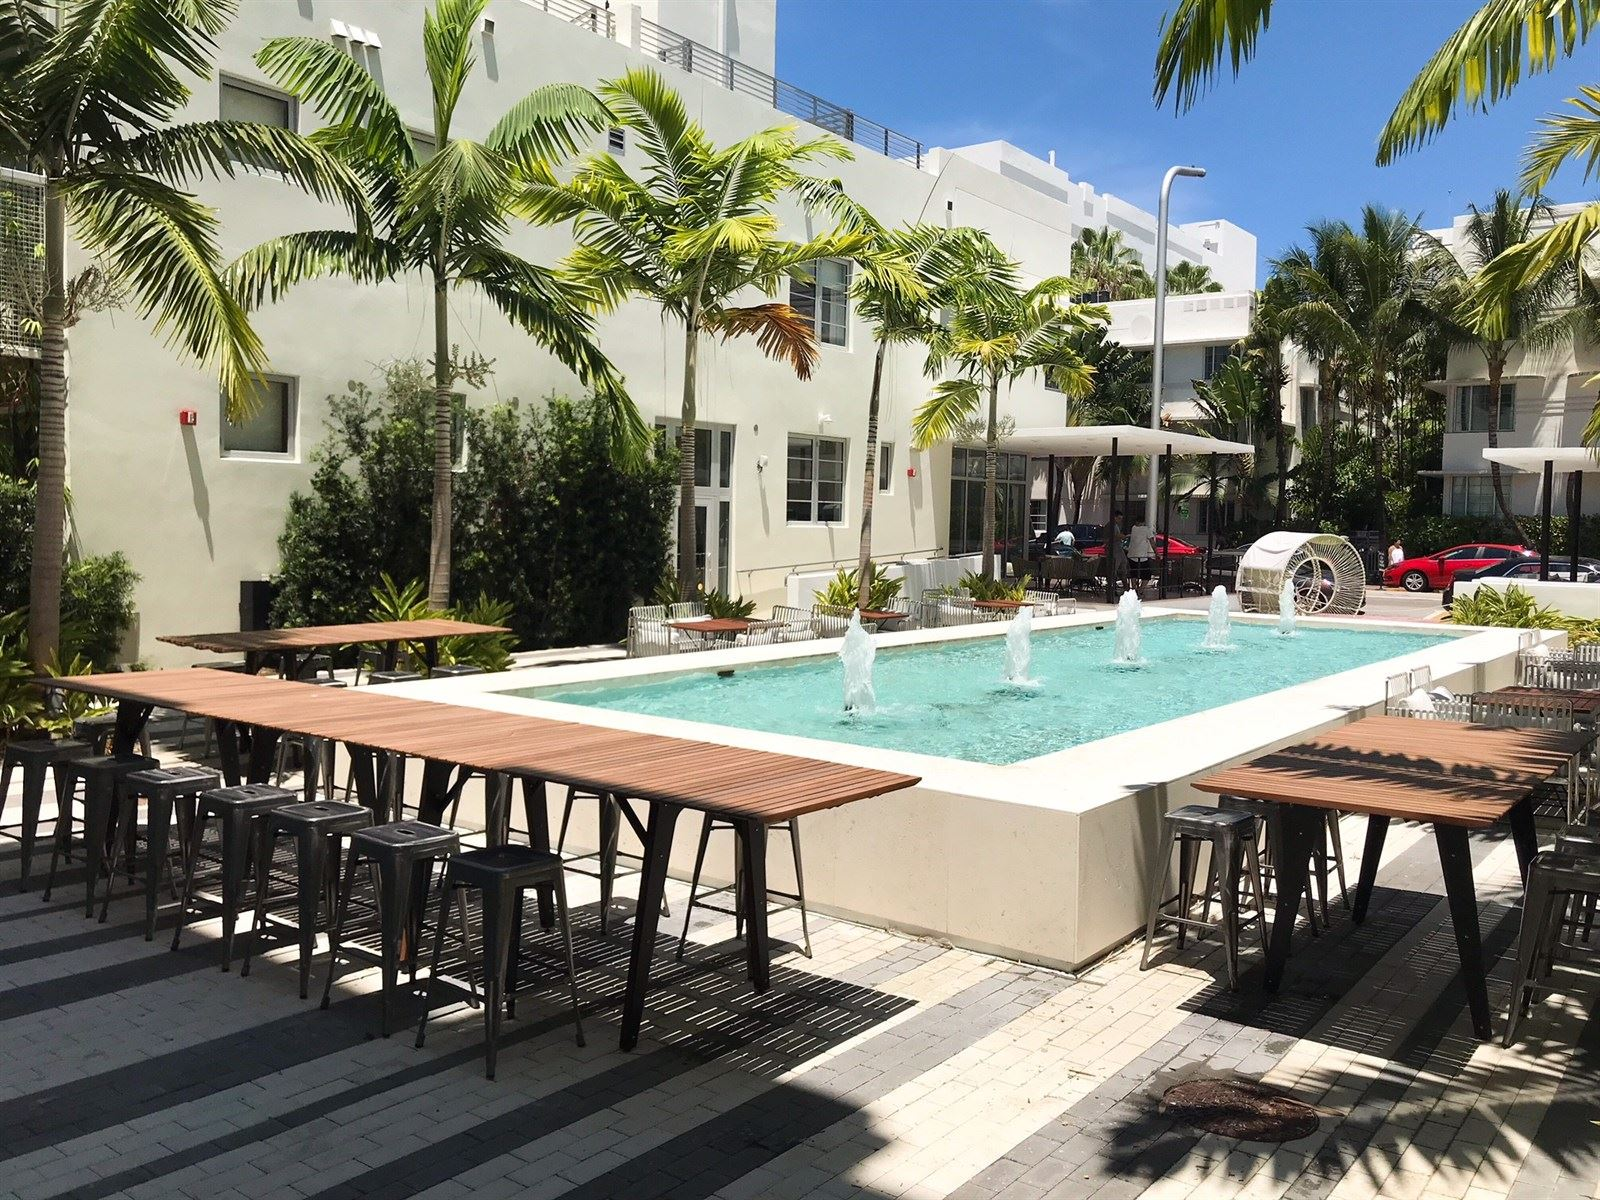 Image Slide2 Link To Larger Outdoor Patio At Fairwind Hotel Miami